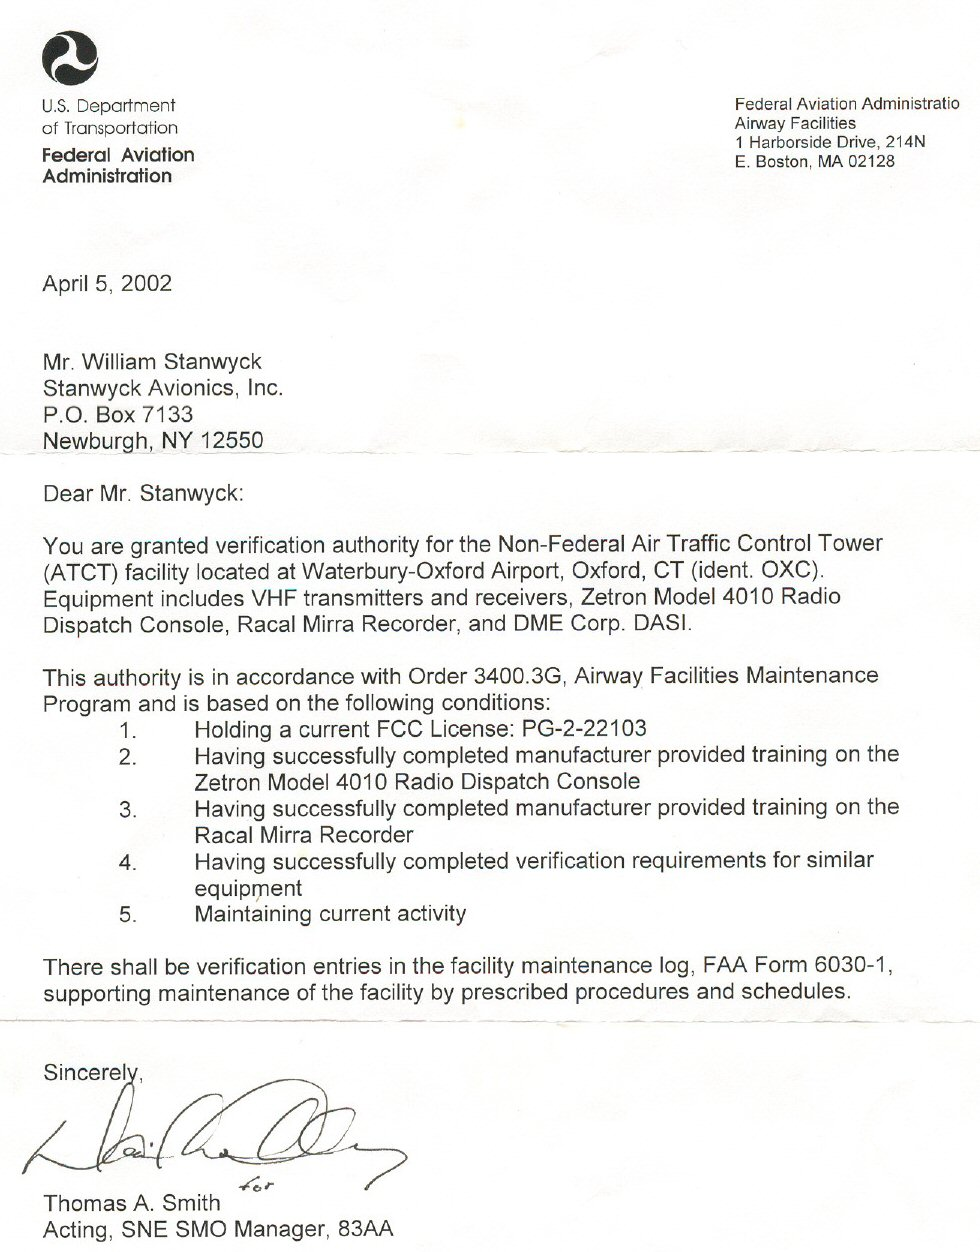 US Department Of Transportation Federal Aviation Administration Letter 3